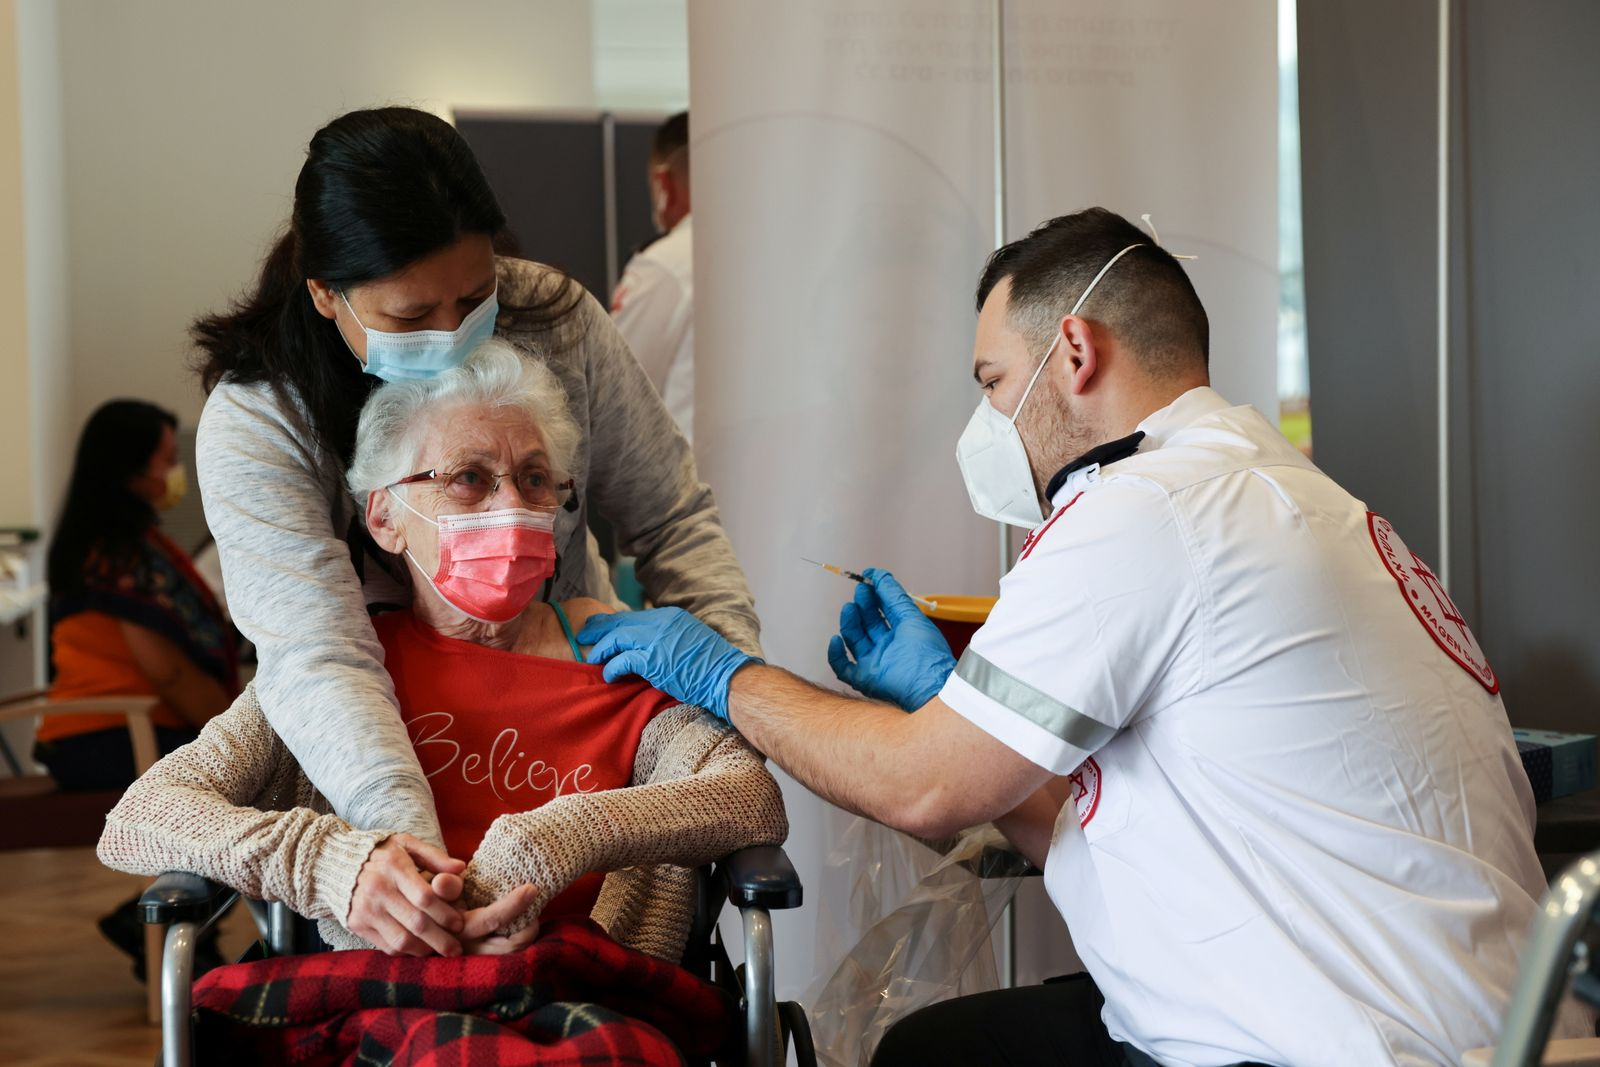 A elderly woman receives a booster shot of her vaccination against the coronavirus disease (COVID-19) at an assisted living facility, in Netanya